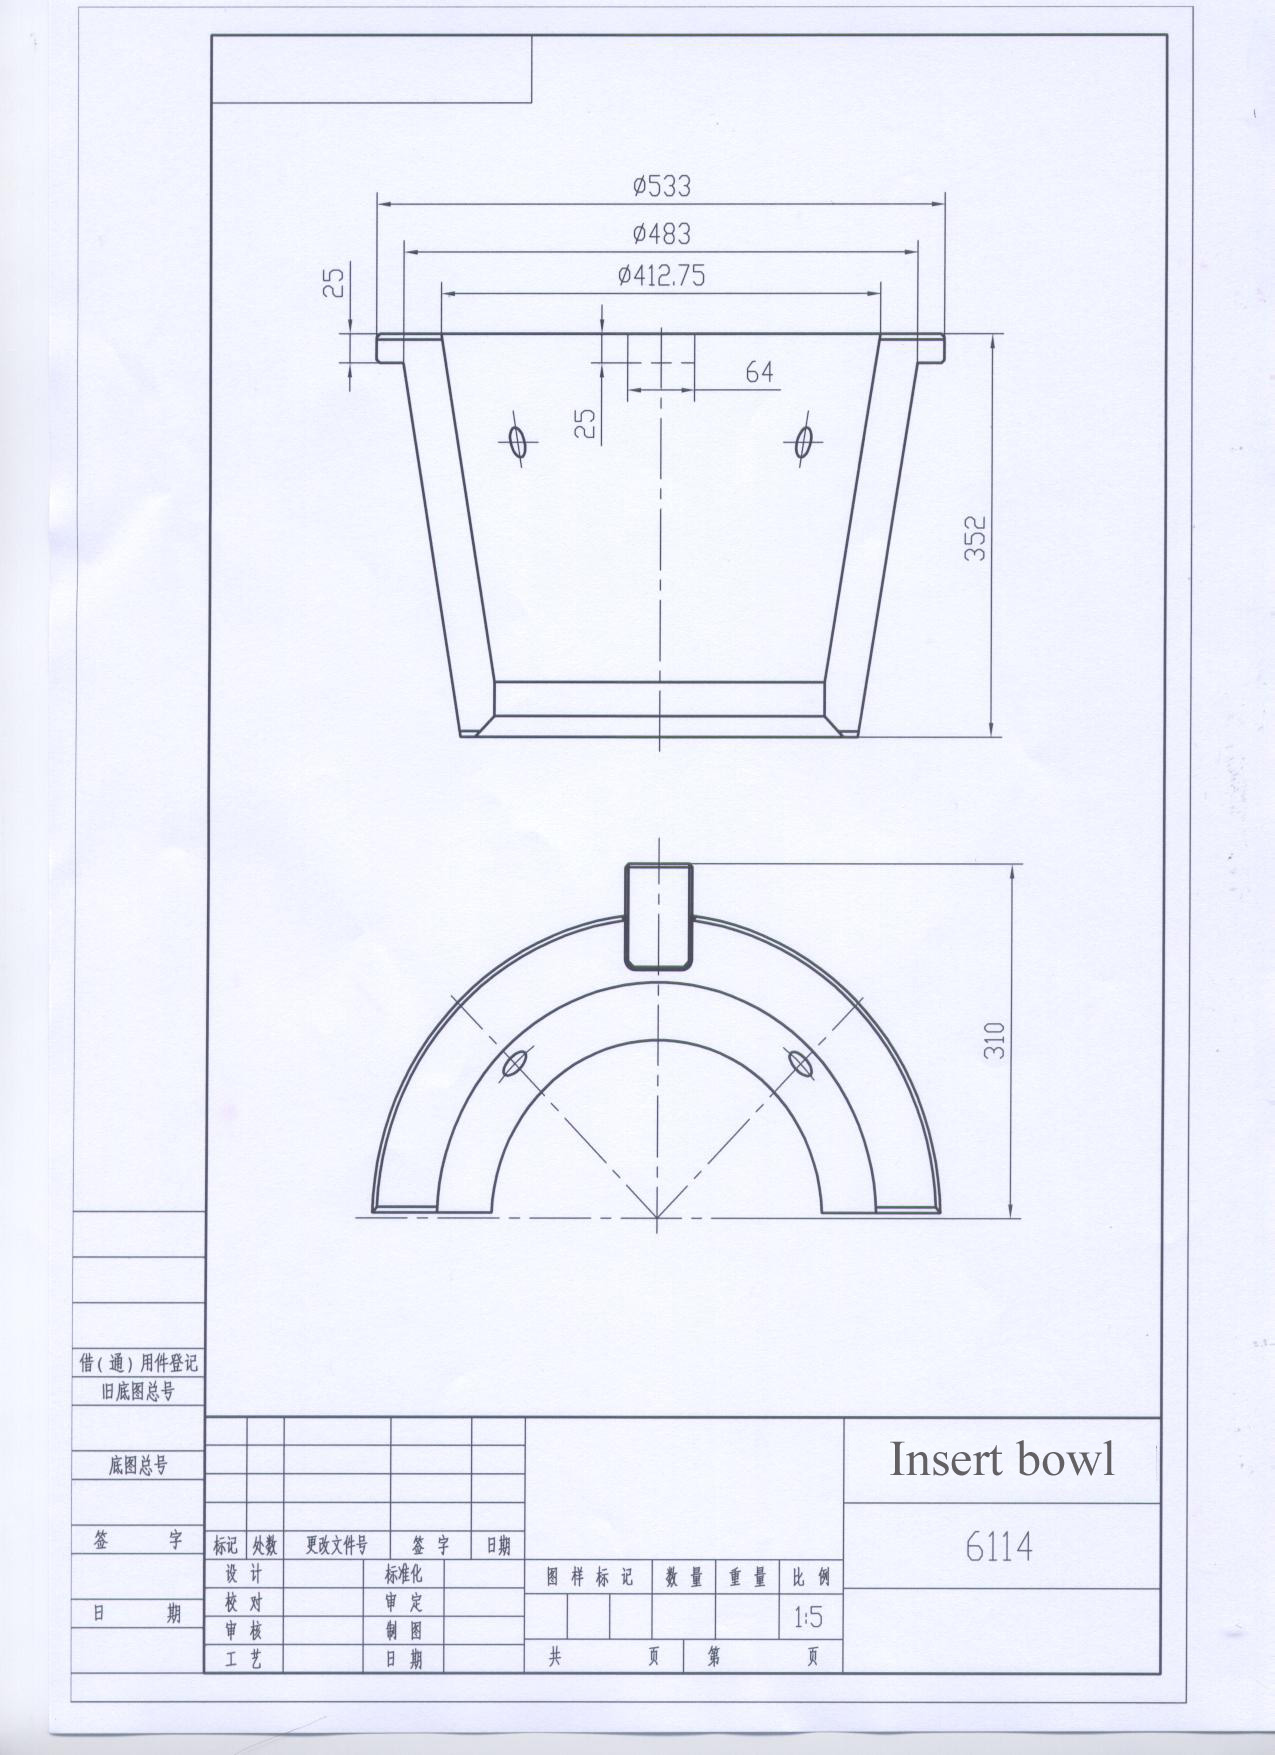 6114 insert bowl drawing